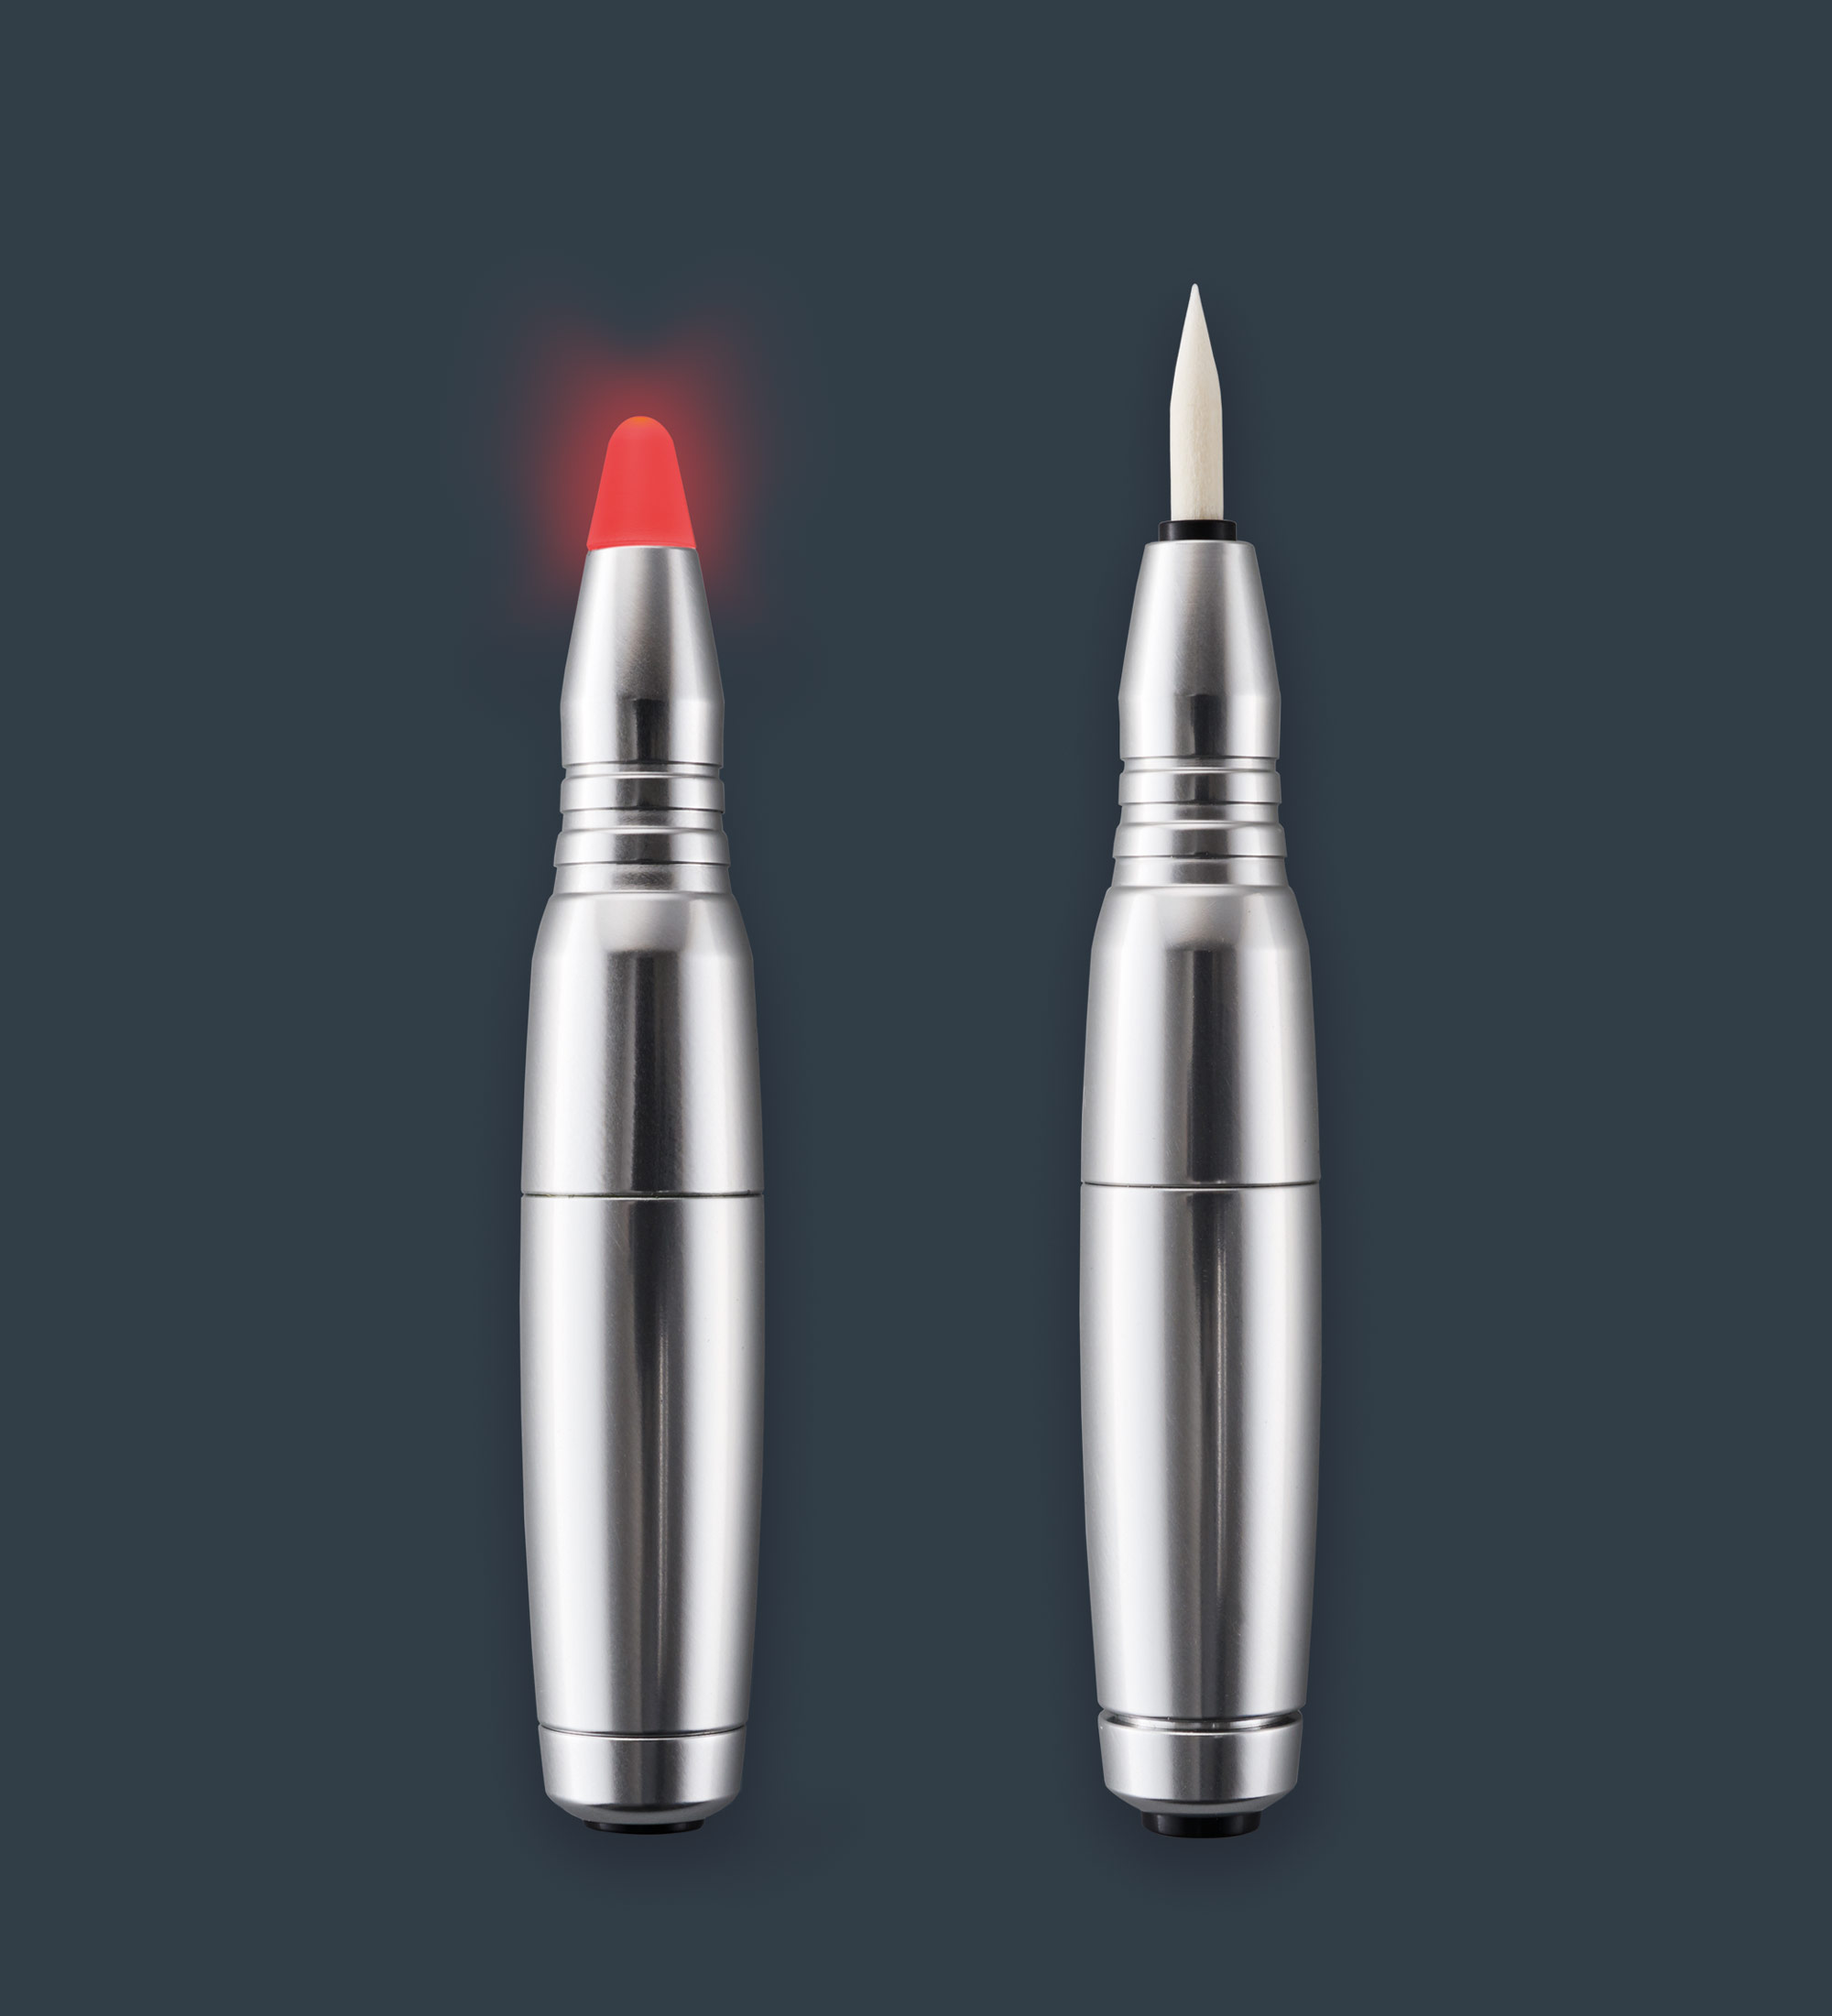 Two different amiea accessories, control pen and a soft laser and pen, on a grey background